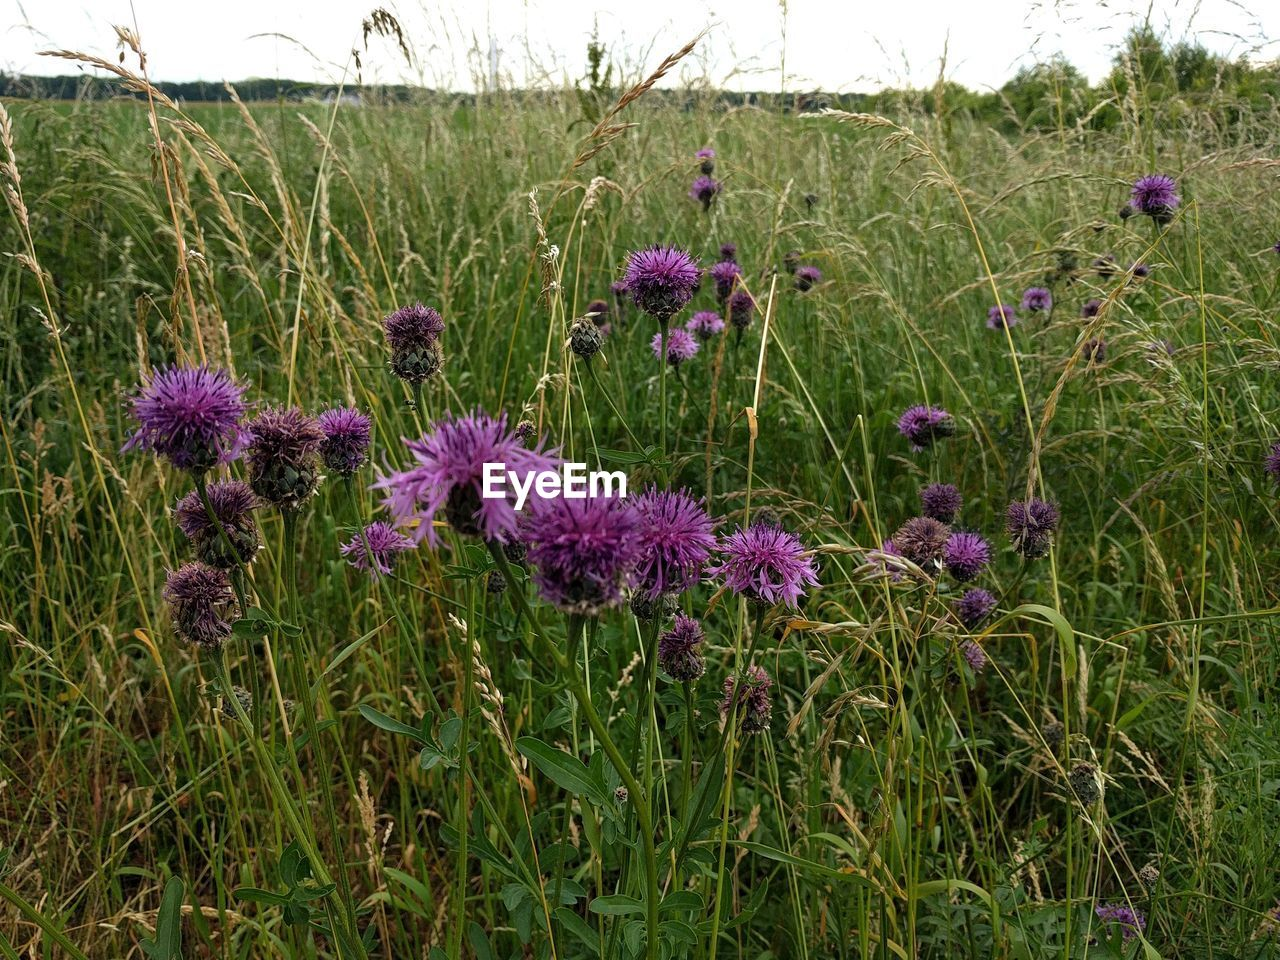 flower, growth, purple, nature, field, plant, grass, beauty in nature, no people, outdoors, blooming, thistle, fragility, freshness, flower head, day